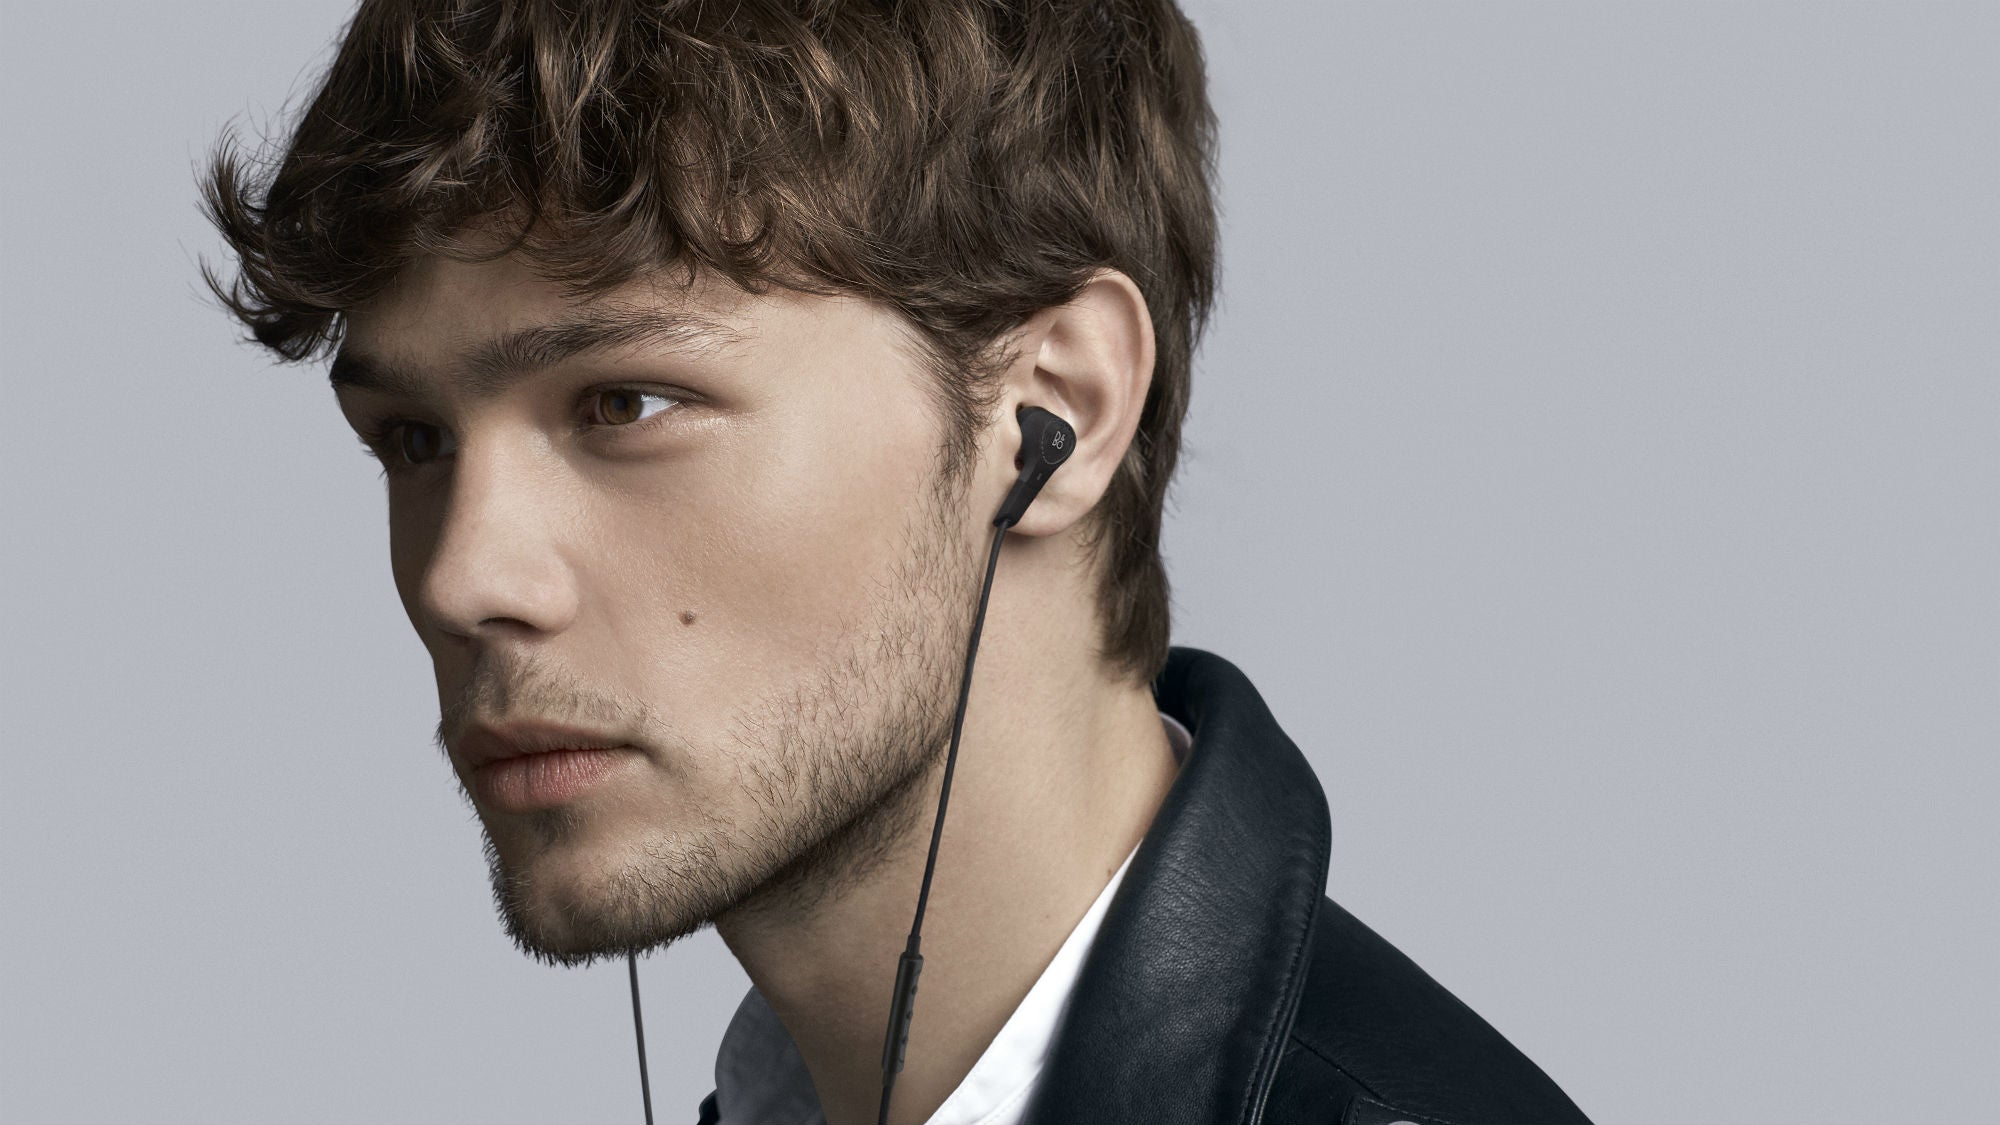 43a5c23c9b2 Beoplay E4 might be the stealthiest noise-cancelling earphones around